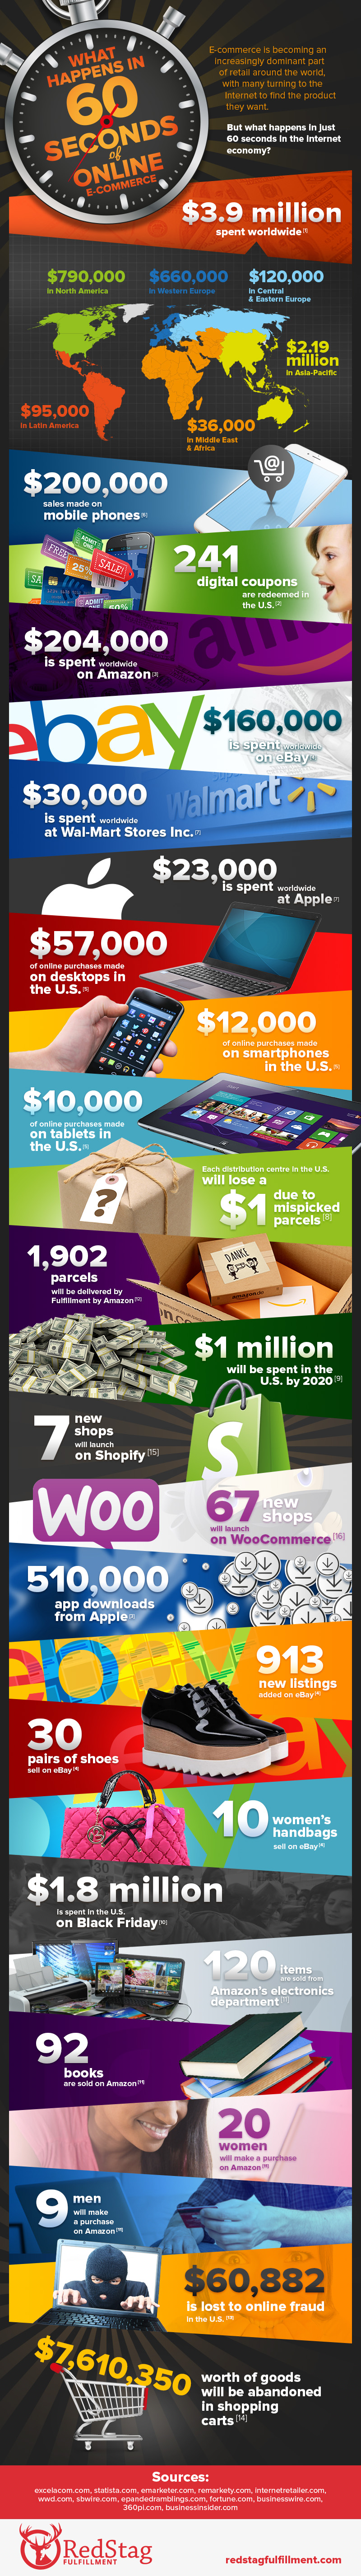 The World Shops This Much Per Minute - Infographic